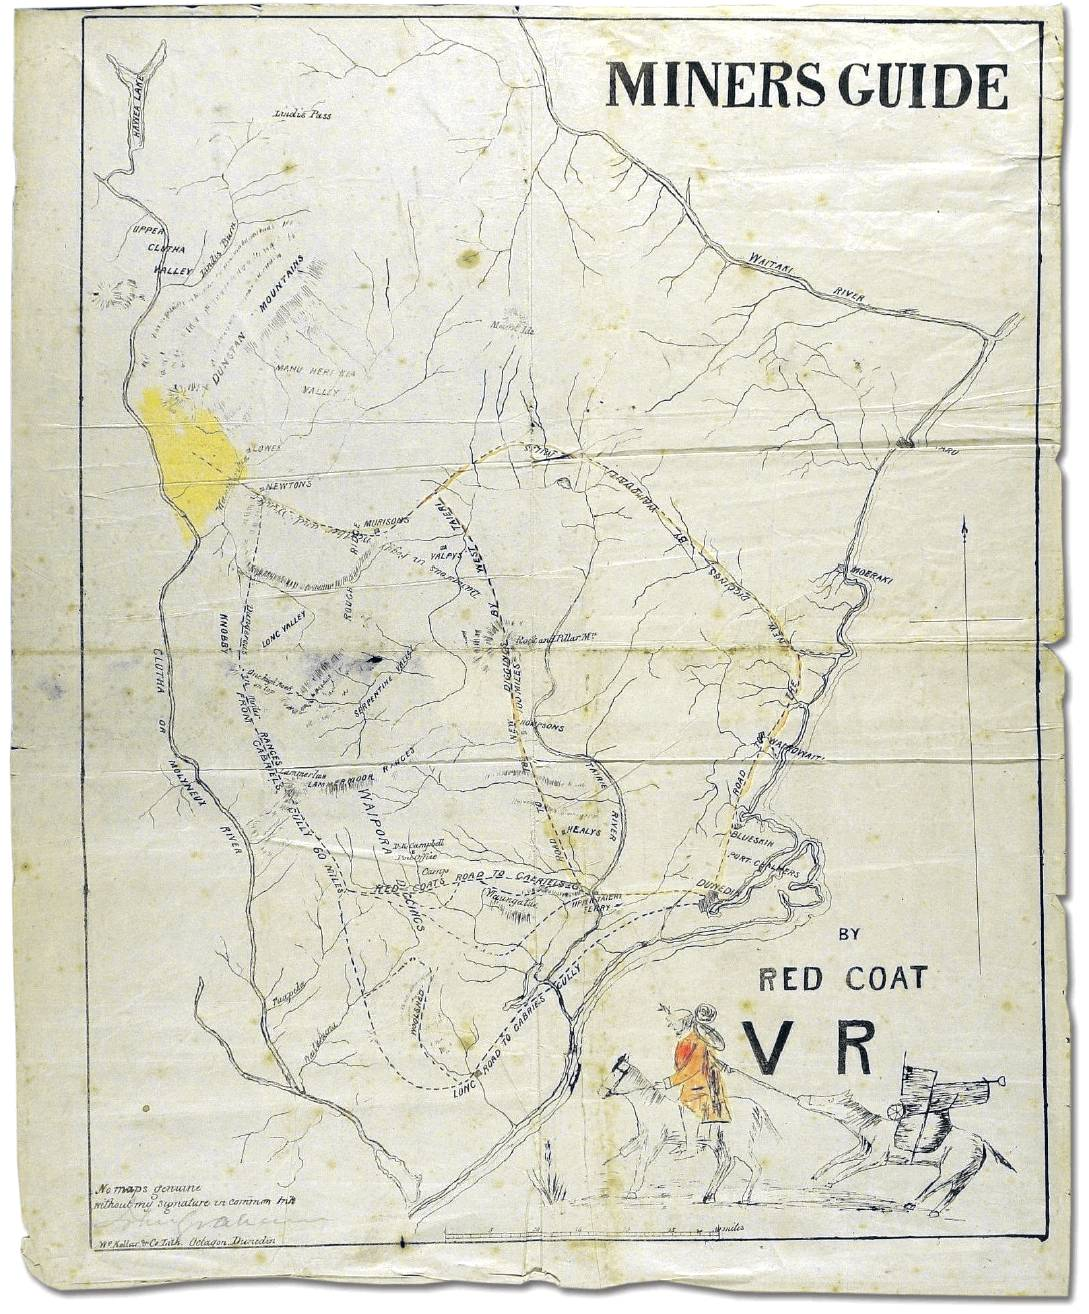 The Way to the Gold! Red Coat's map of 1862.